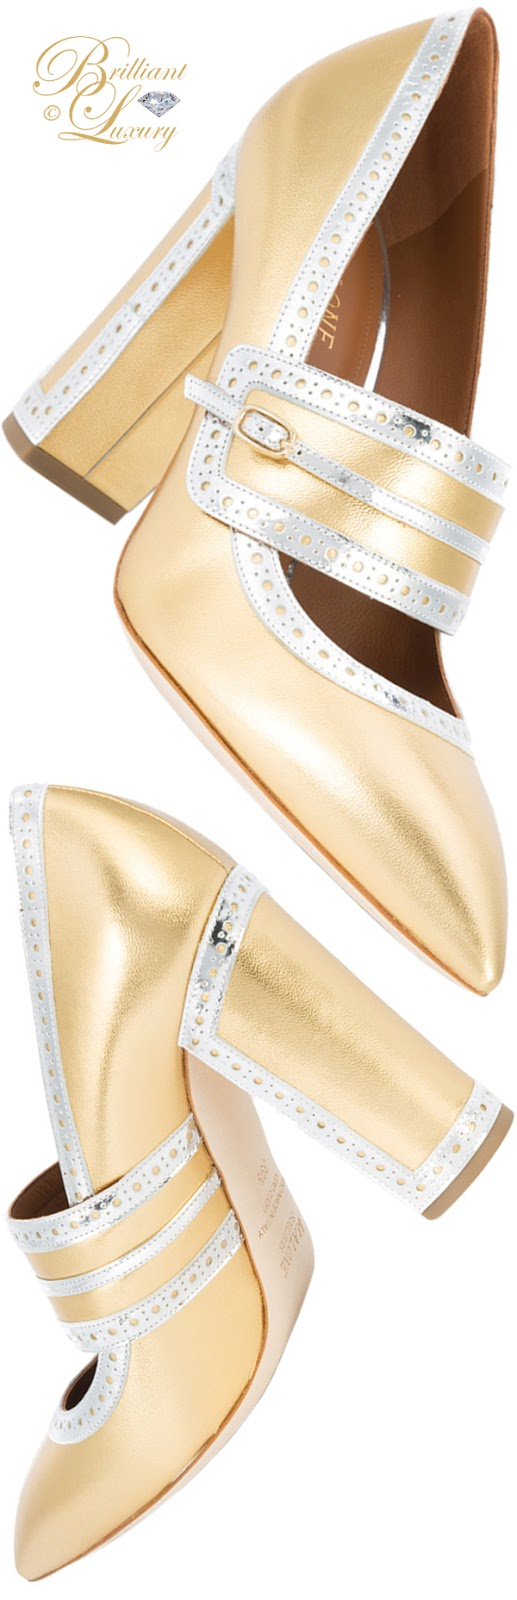 Brilliant Luxury ♦ Malone Souliers gold-coloured block heel pumps